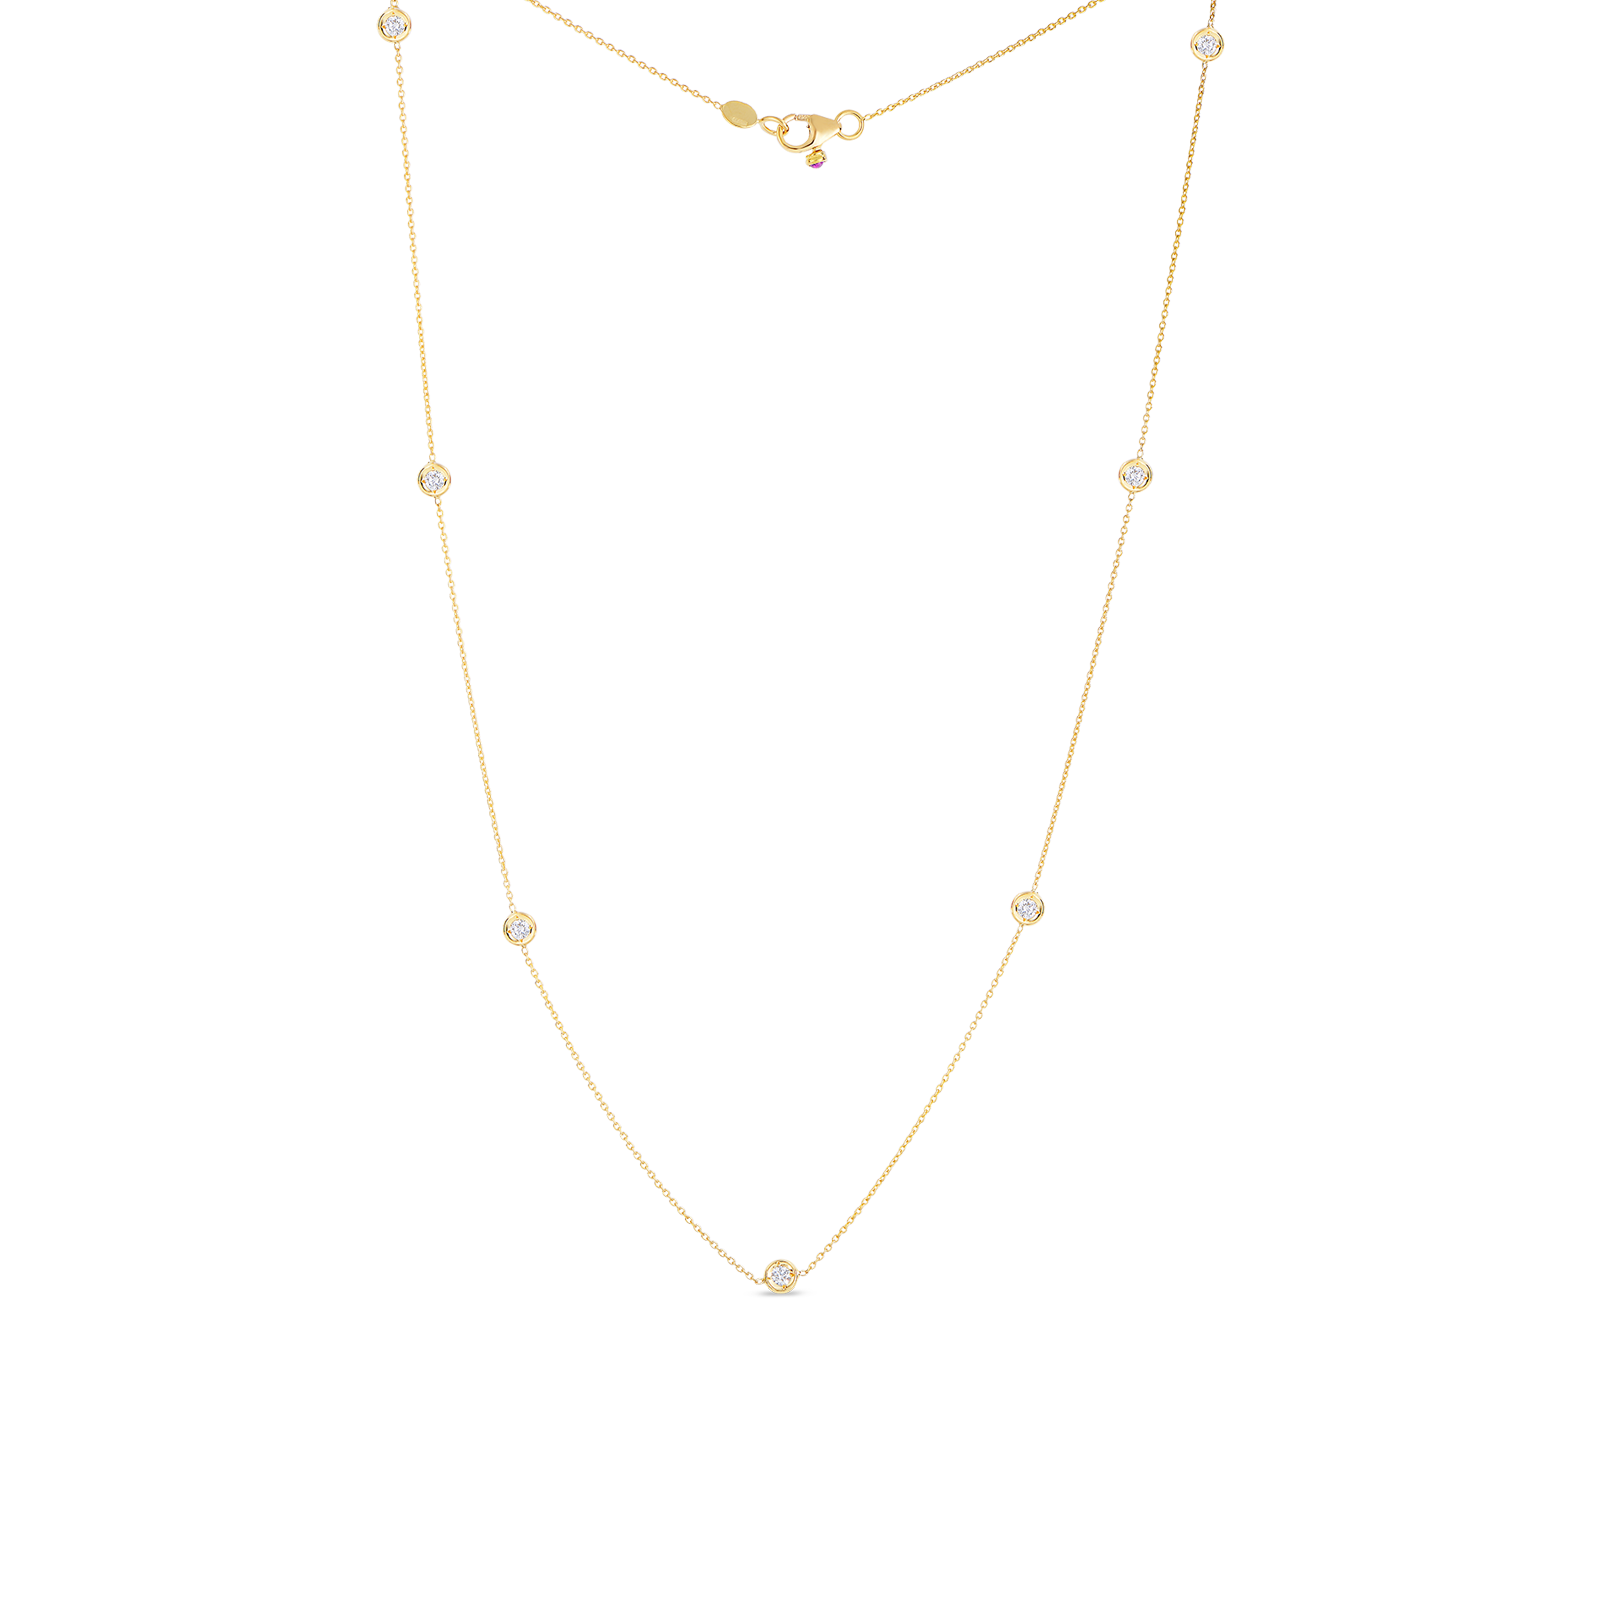 Gold Necklace with 7 Diamond Stations by Roberto Coin